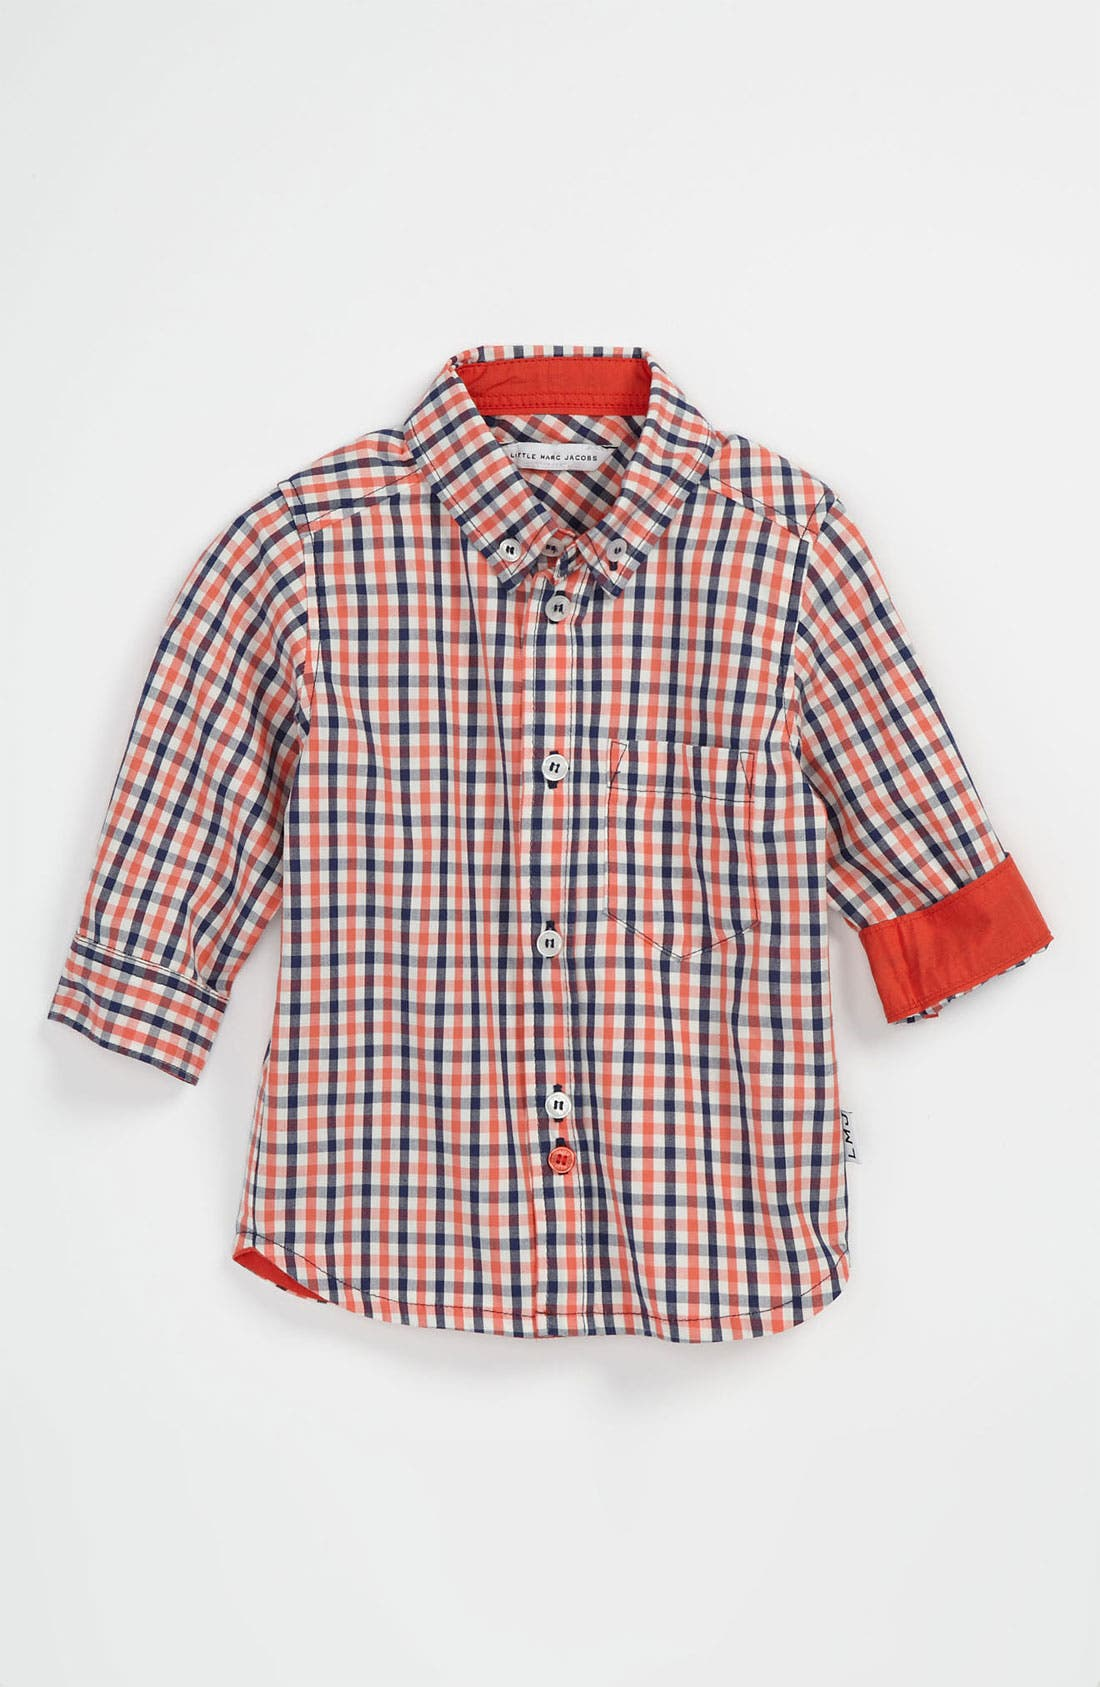 Alternate Image 1 Selected - LITTLE MARC JACOBS Woven Shirt (Baby)